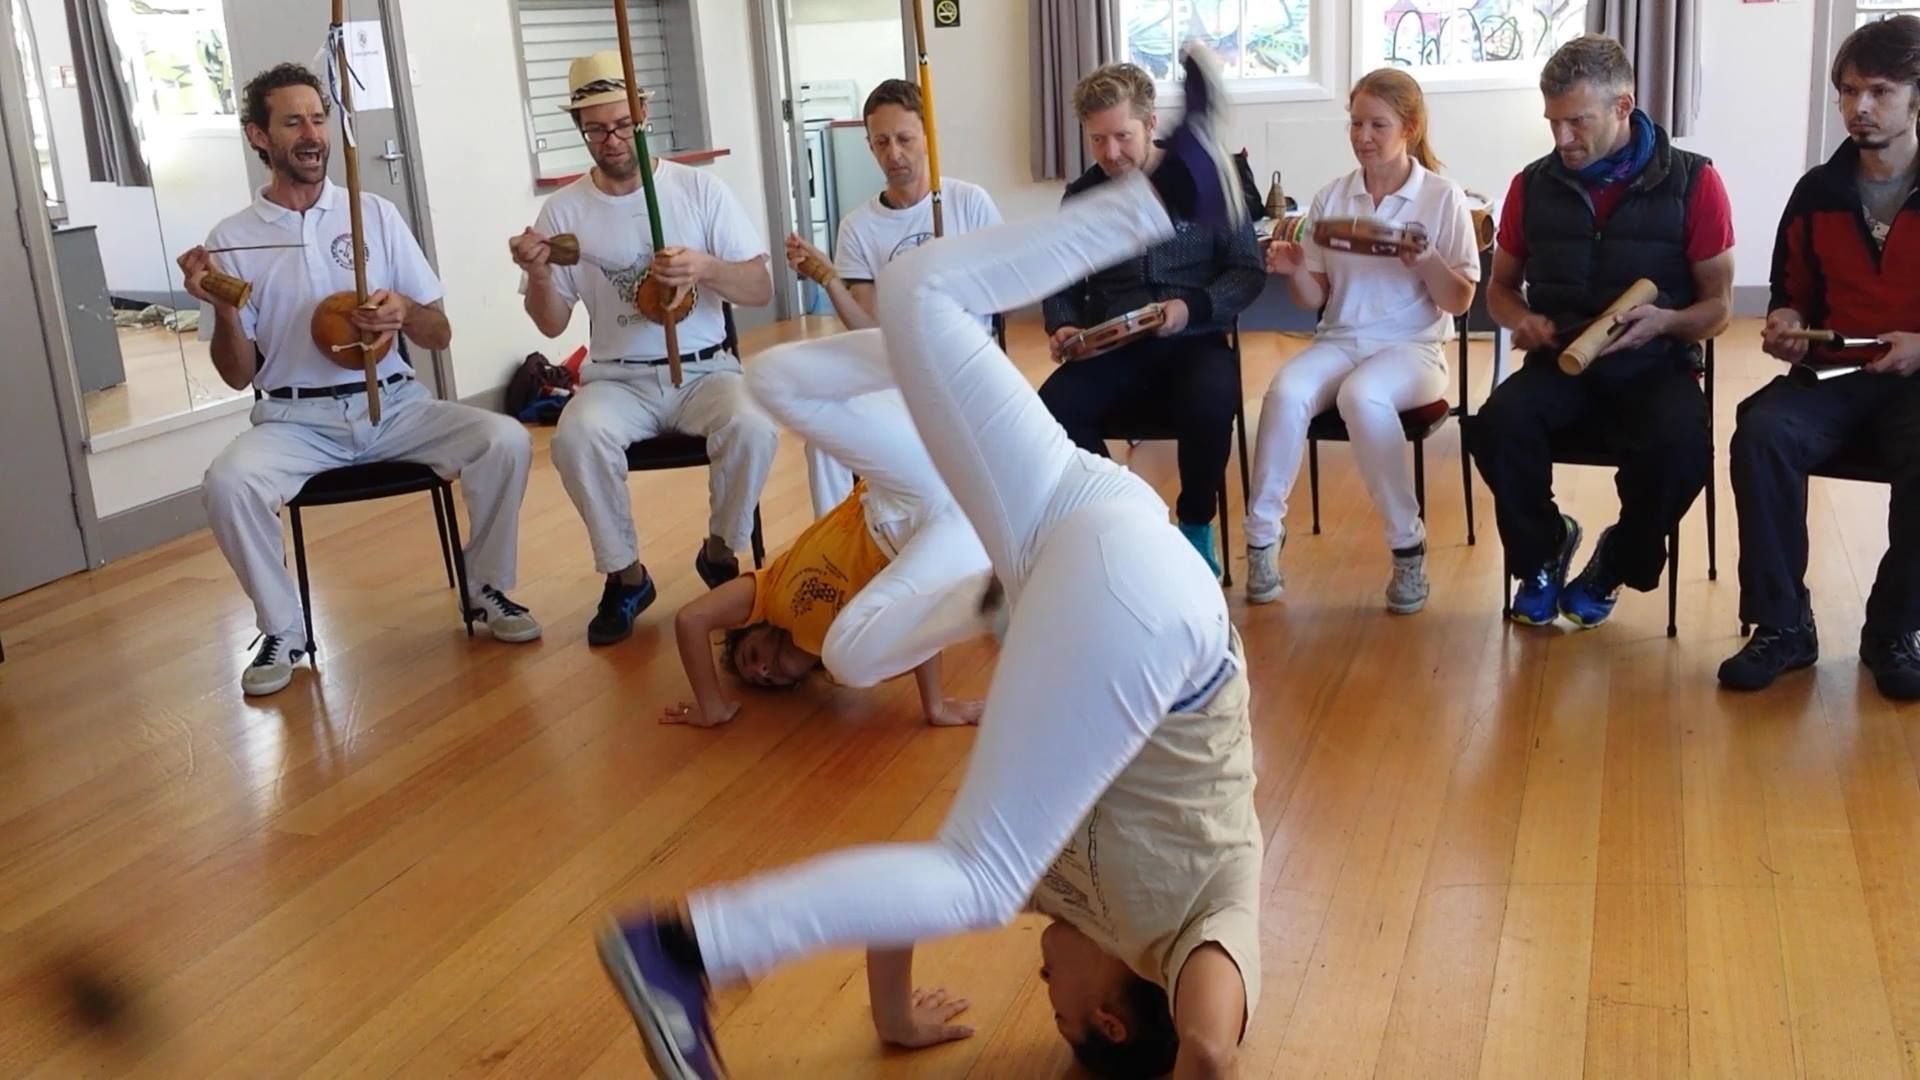 Capoeira Angola in Wellington